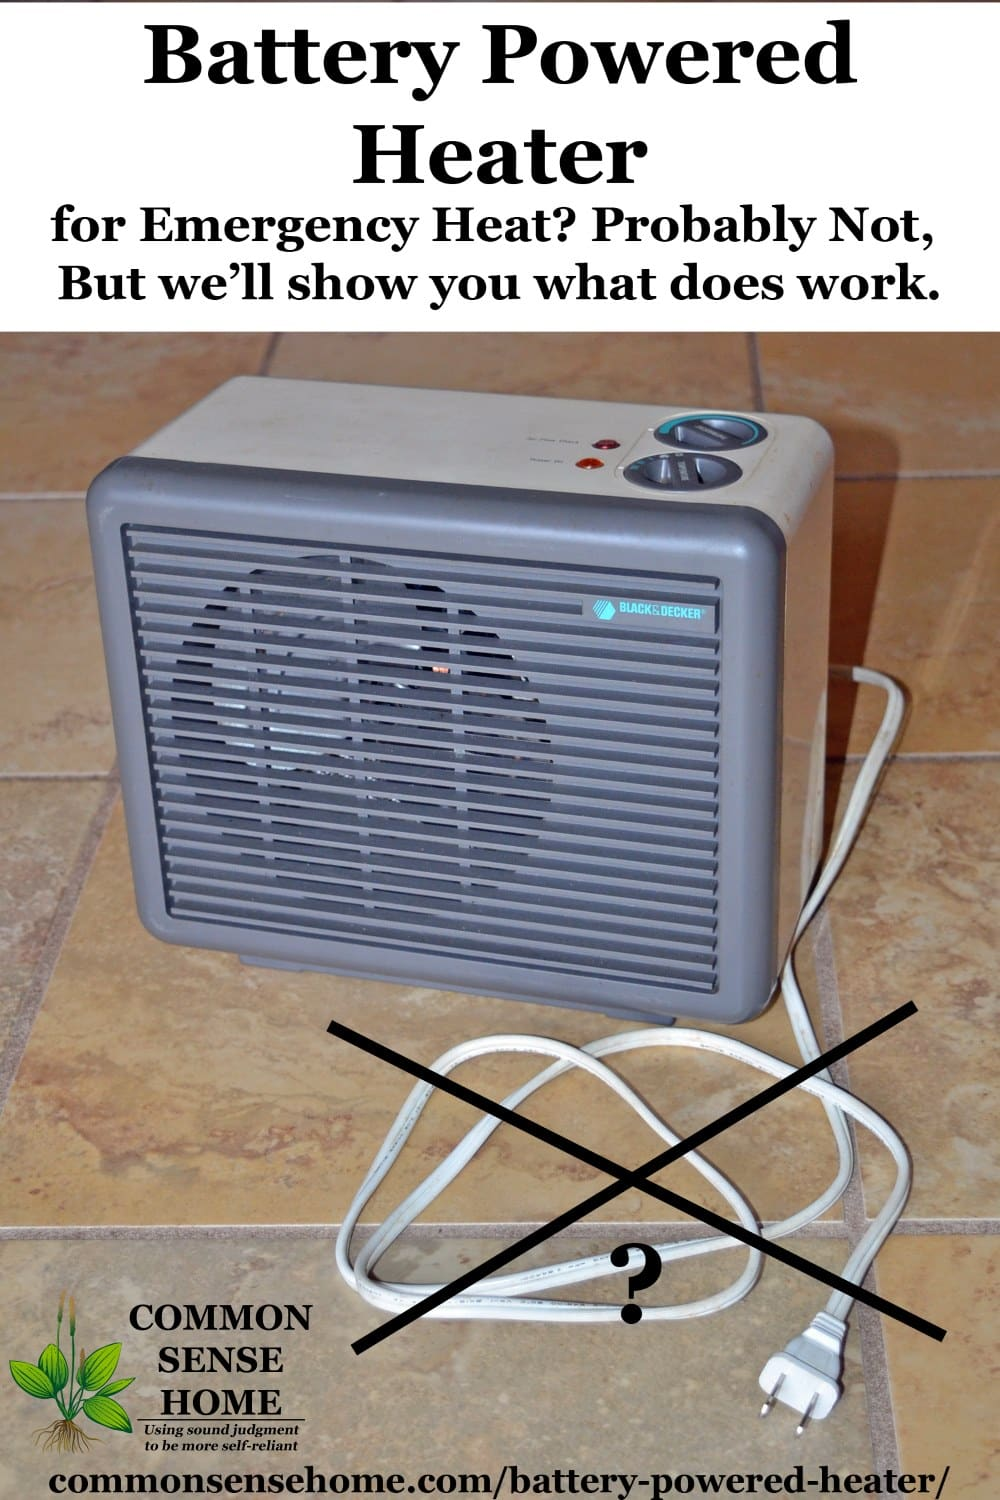 Do Battery Powered Space Heaters or Emergency Heaters Exist?